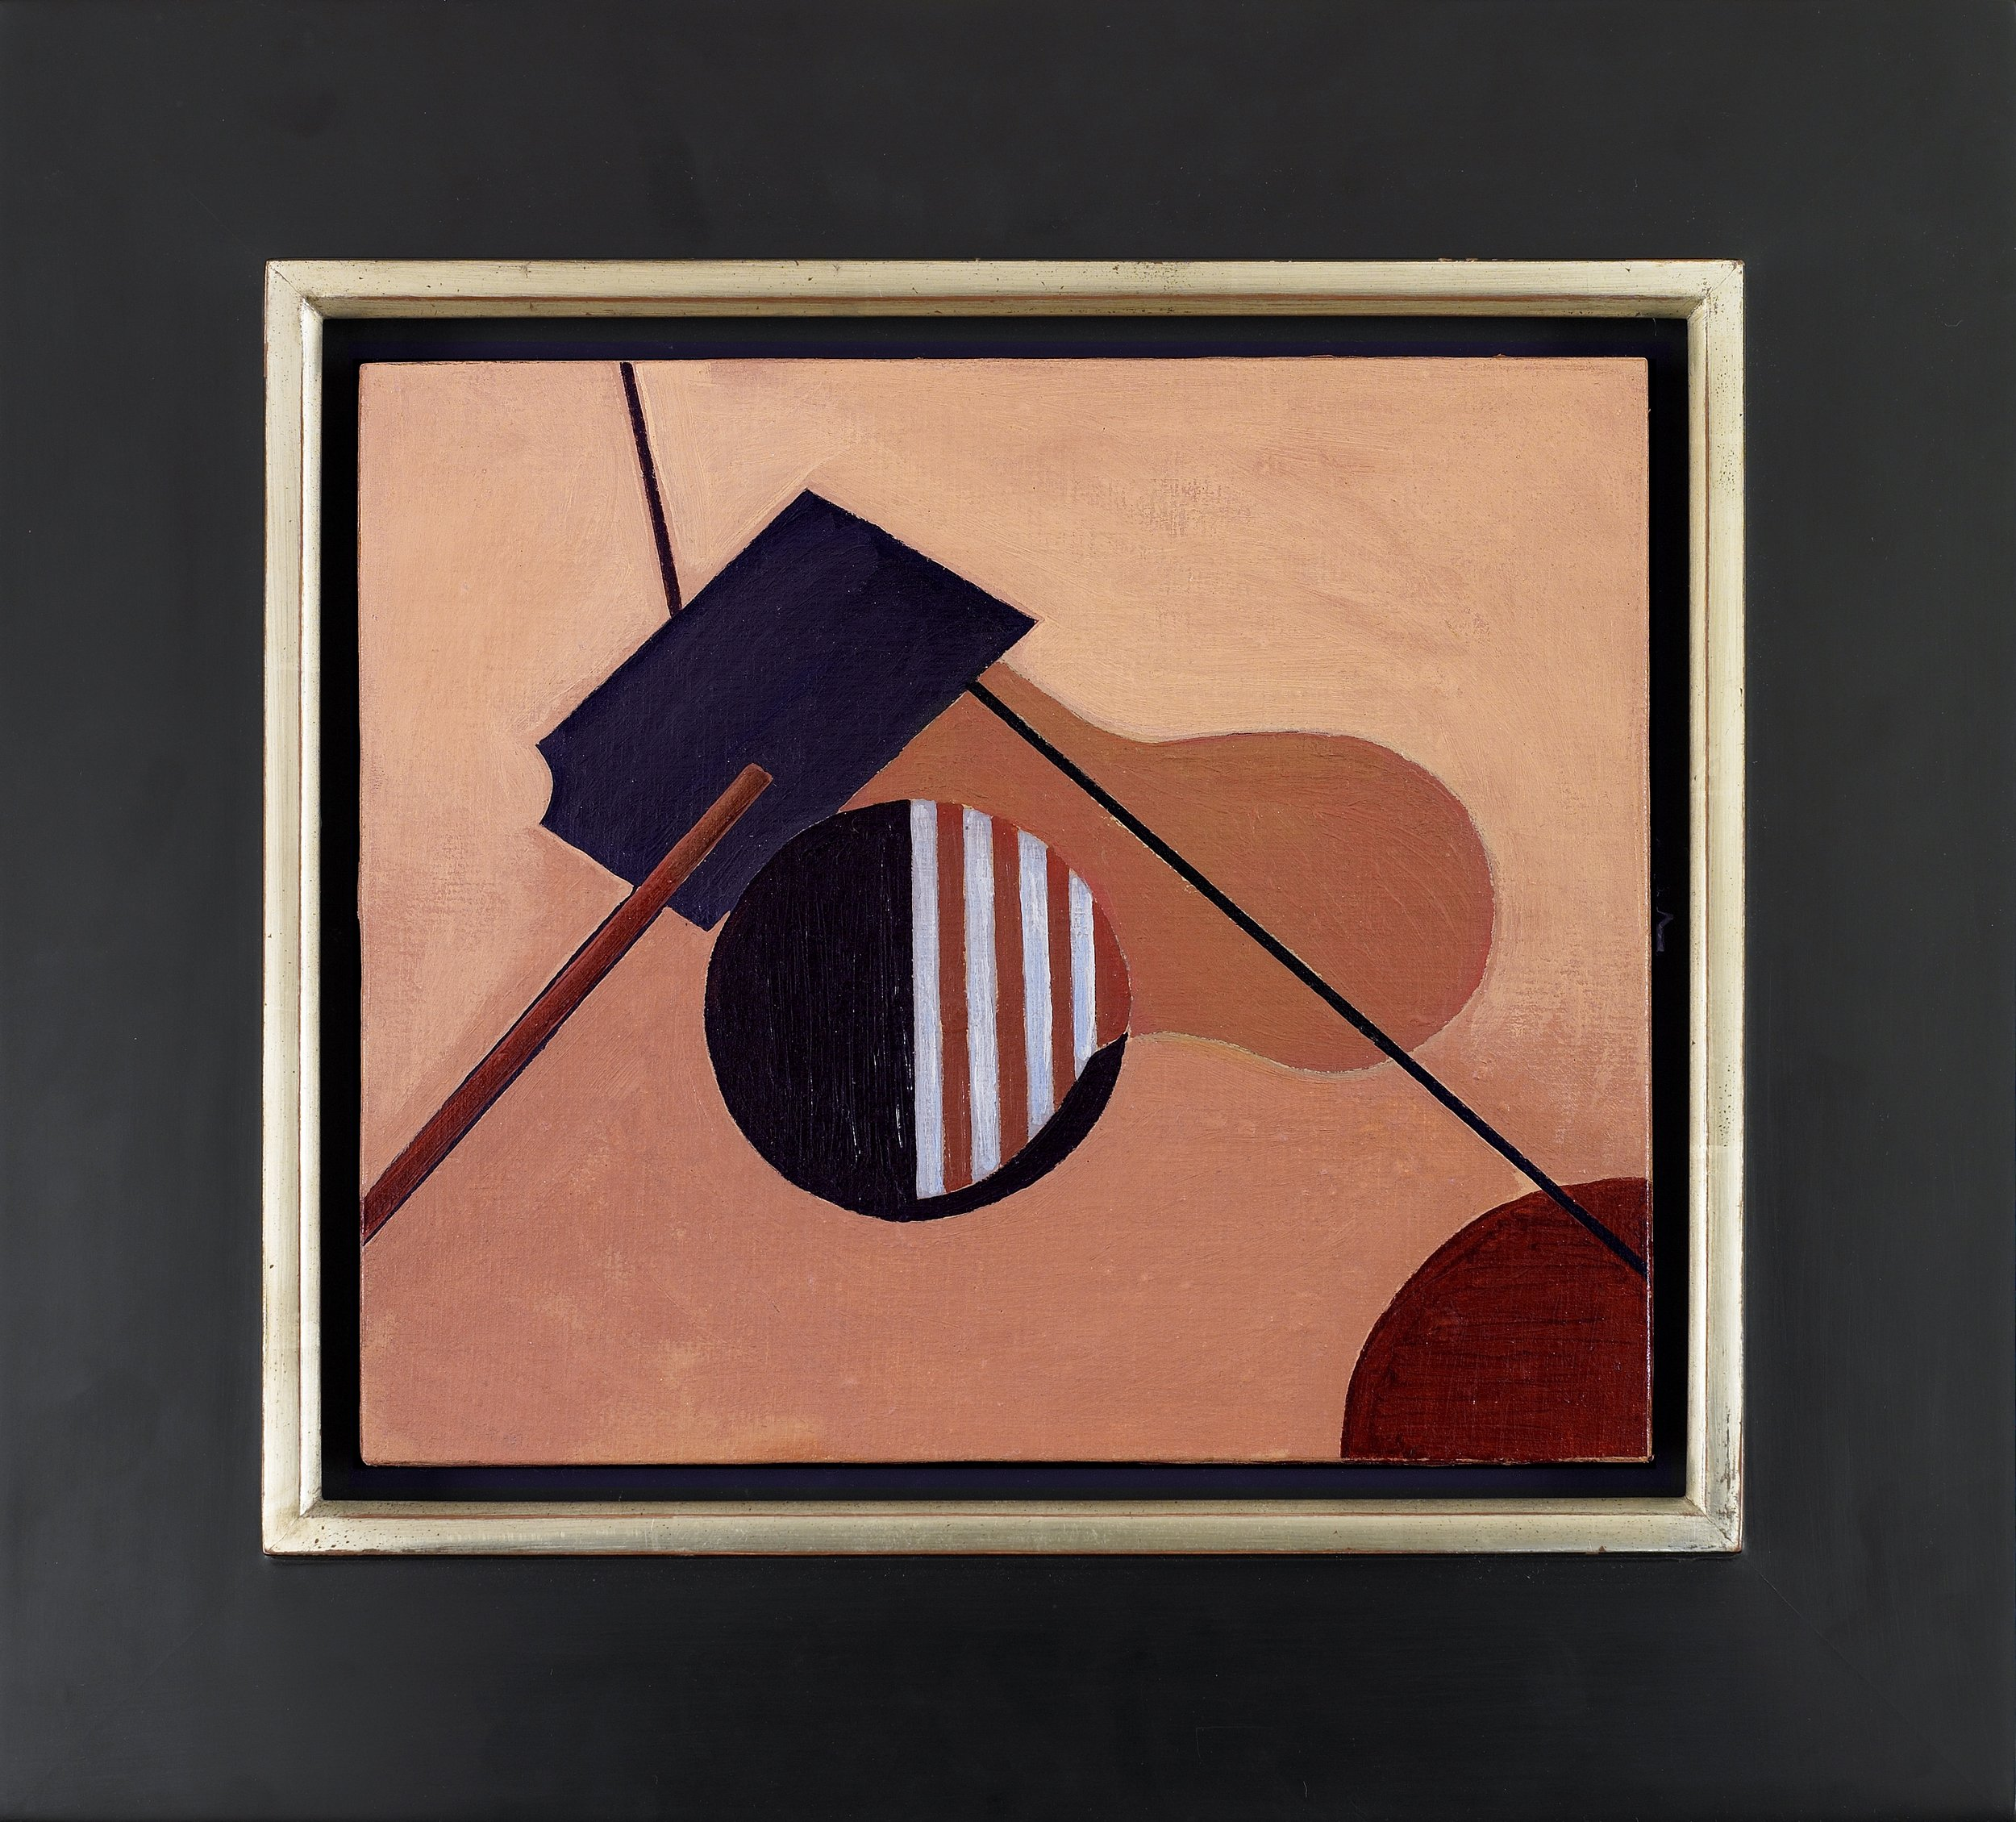 Composition,   Oil on canvasboard, 1939, 10 x 11 ½ inches